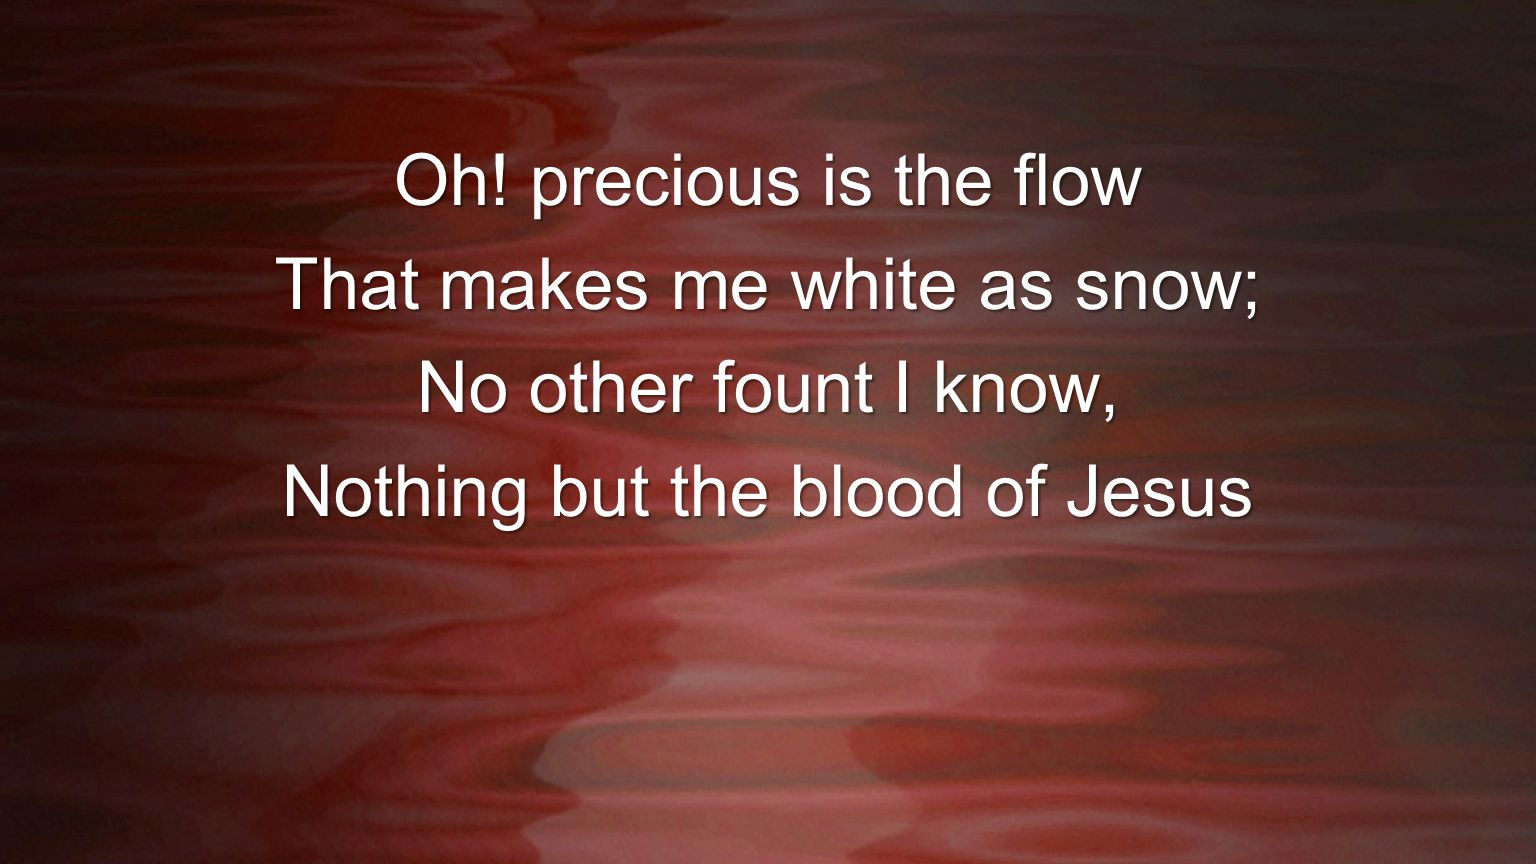 Oh! precious is the flow That makes me white as snow; No other fount I know, Nothing but the blood of Jesus